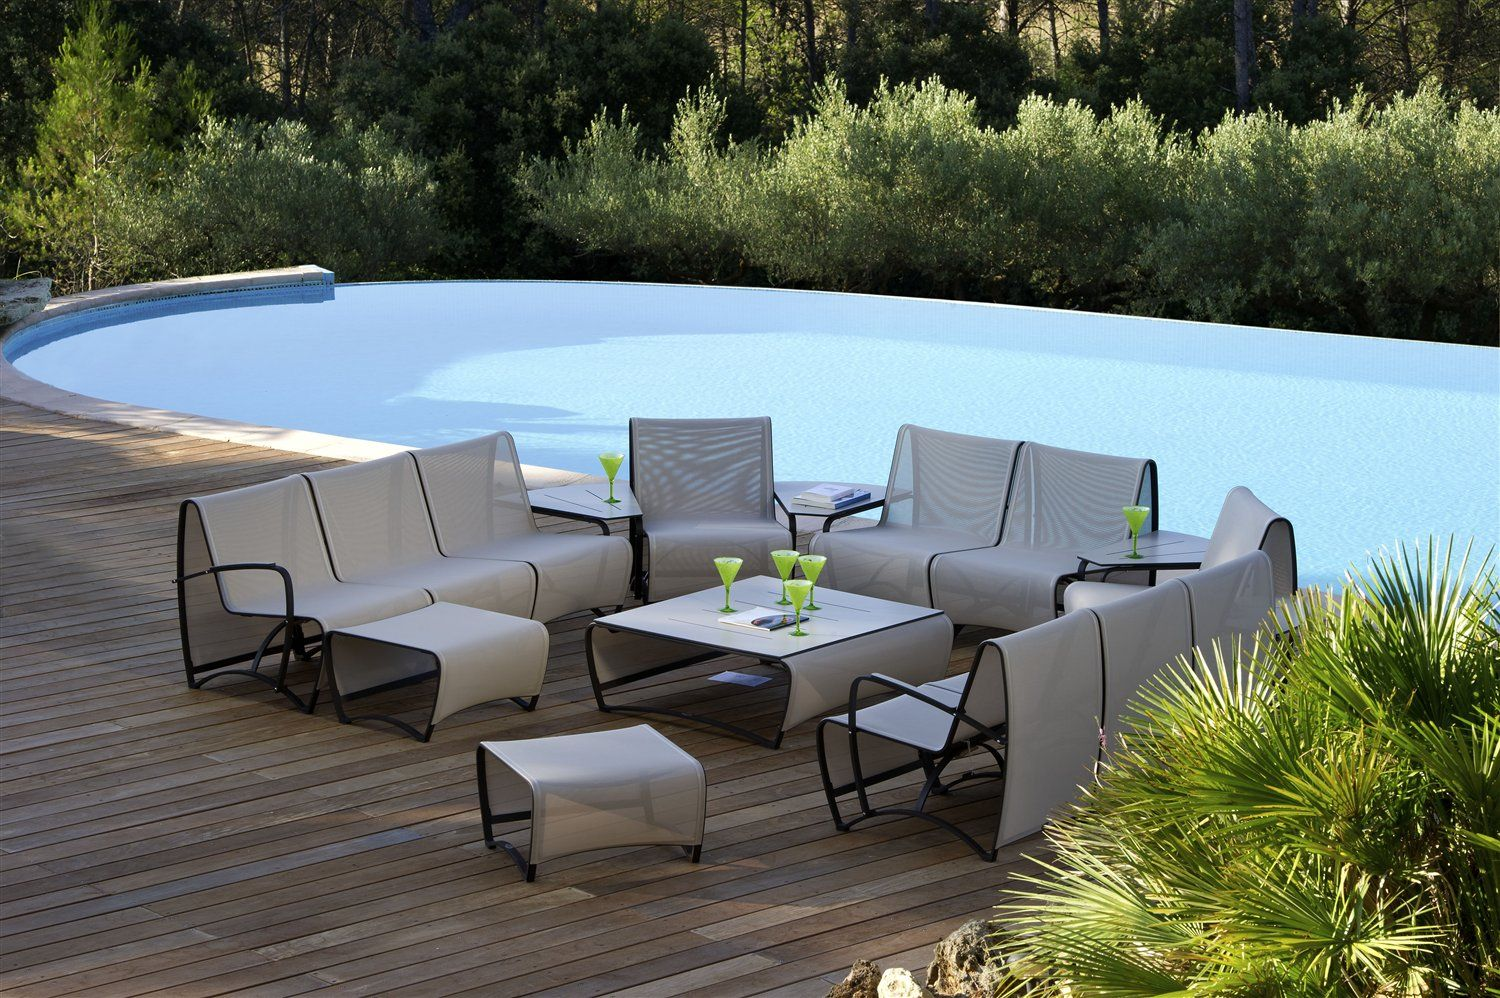 LES JARDINS Low Rise Outdoor Seating